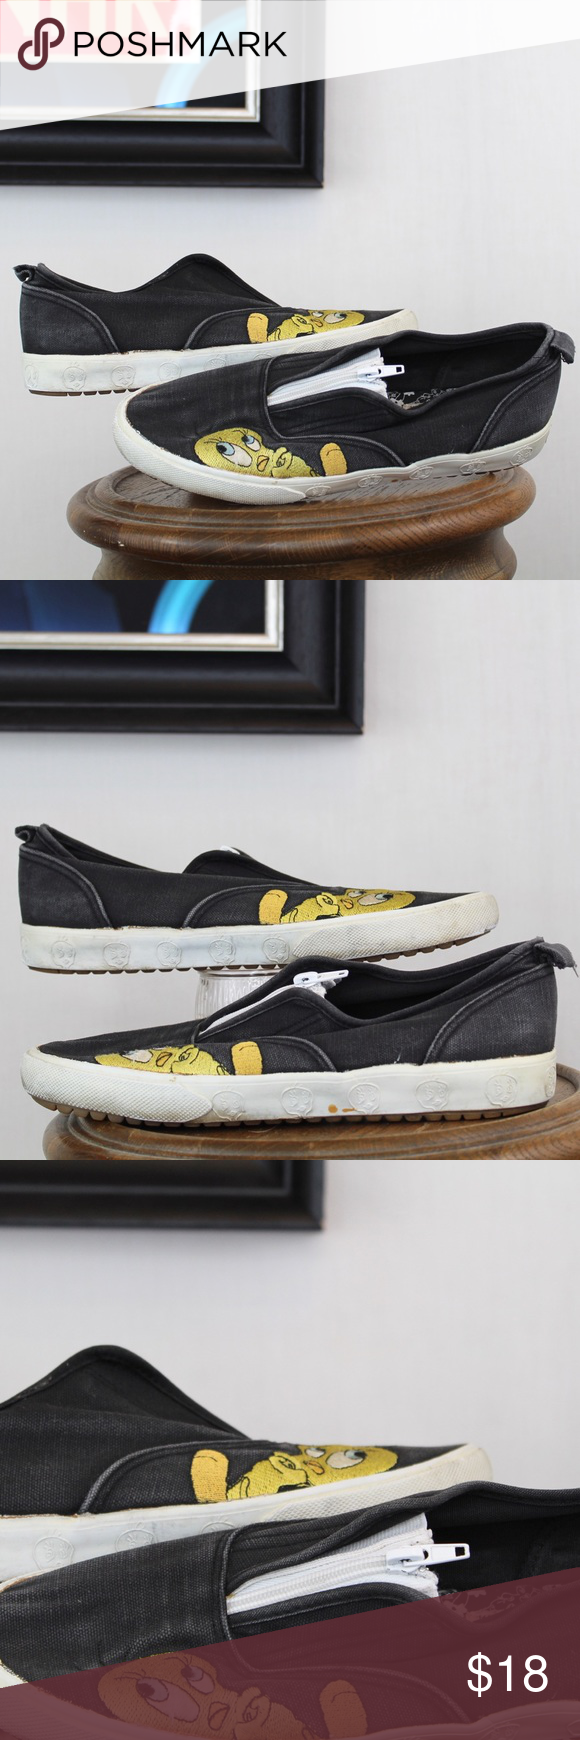 Tweety Slip ons Super cute Looney Tunes black slip ons with tweety embroidered on each shoe Has tweety in the rubber bottom of the shoe They are a Womens 85    depop 70s...